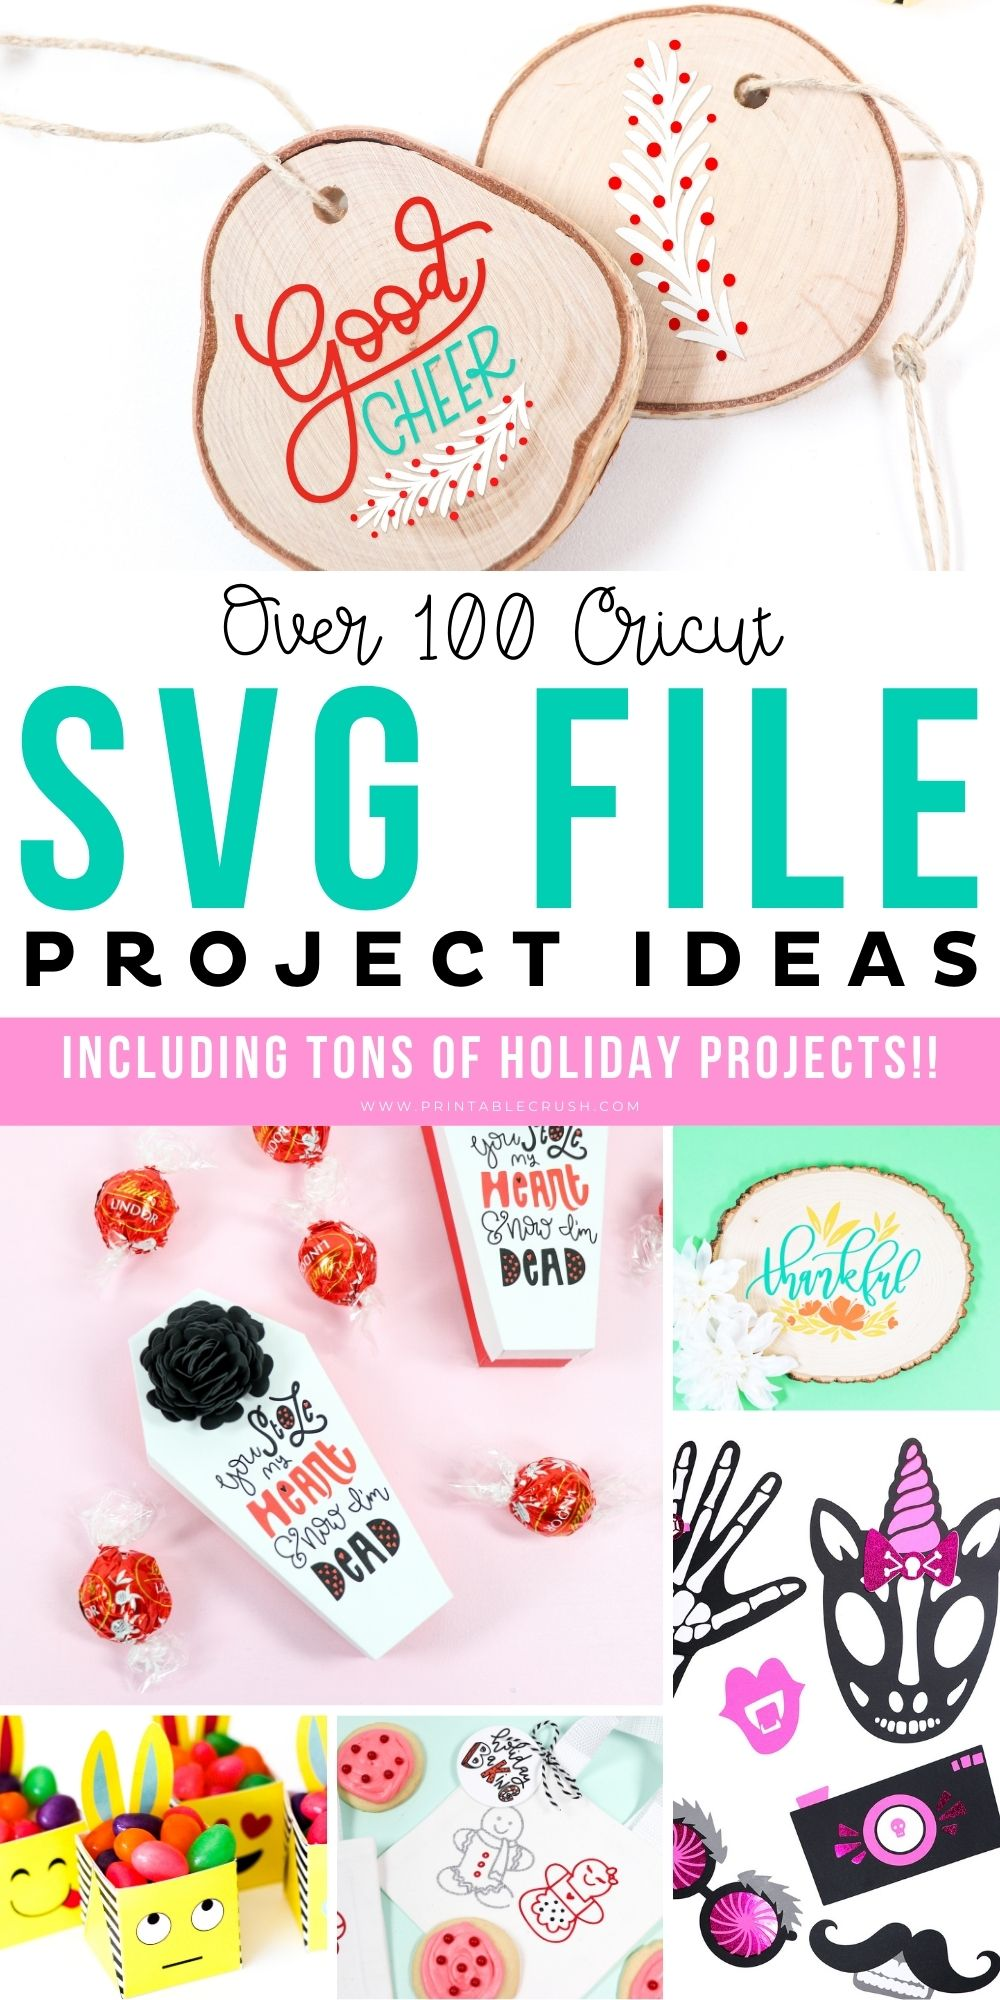 Over 100 Cricut SVG File Project Ideas - Ideas for Cricut Machine - Holiday Cricut Projects - Printable Crush